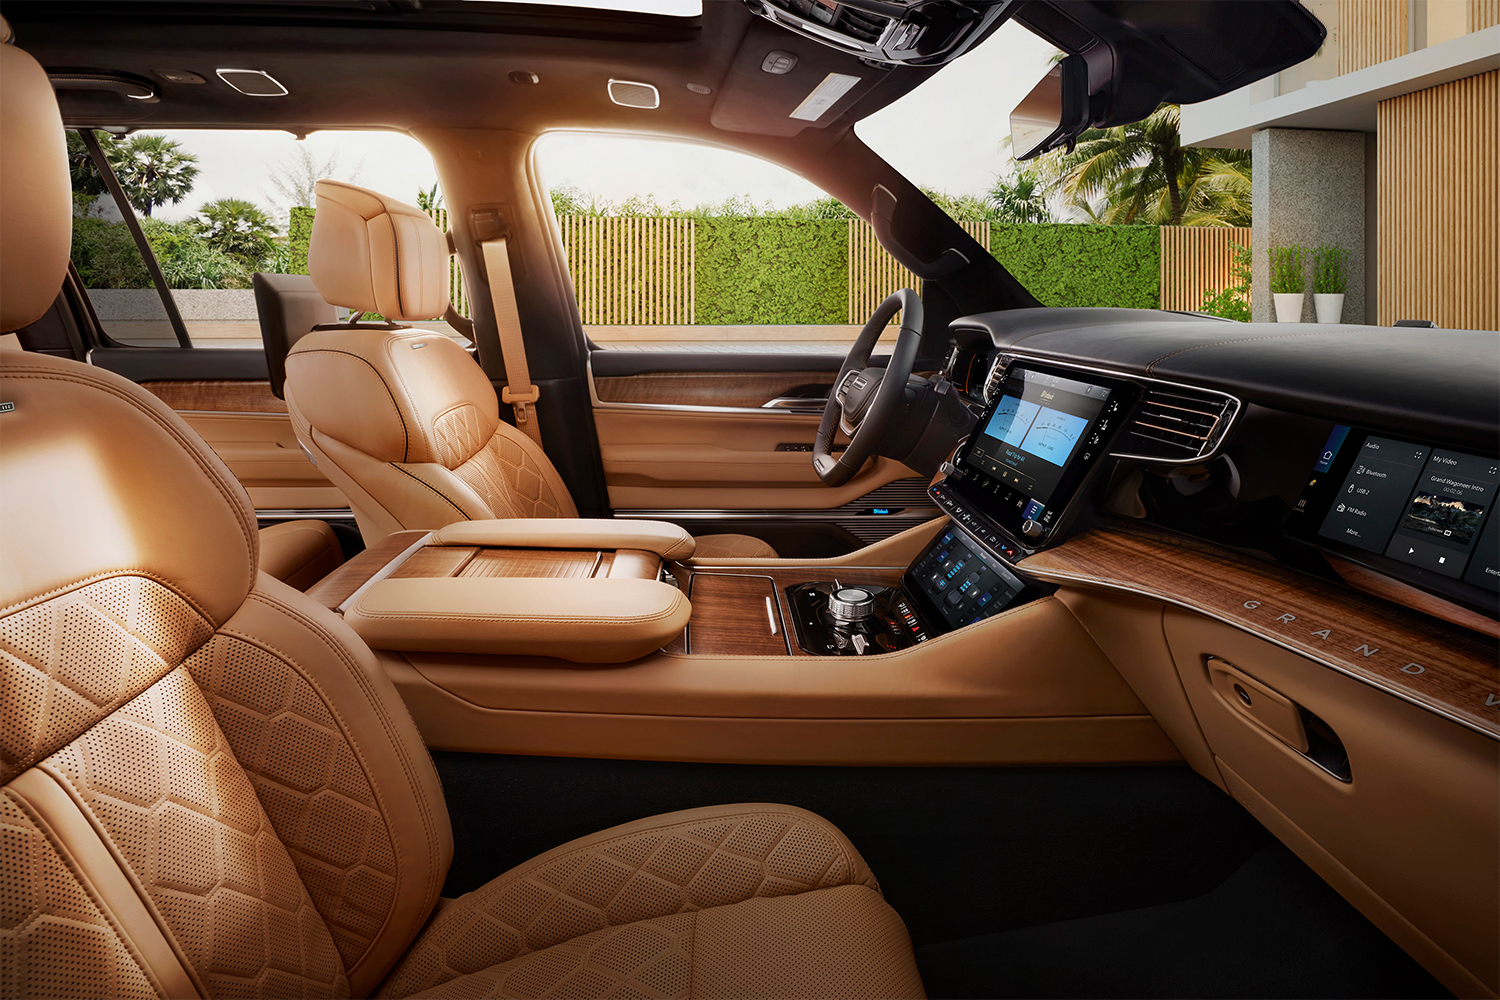 The leather and wood accented interior of the 2022 Jeep Grand Wagoneer shot from the passenger seat